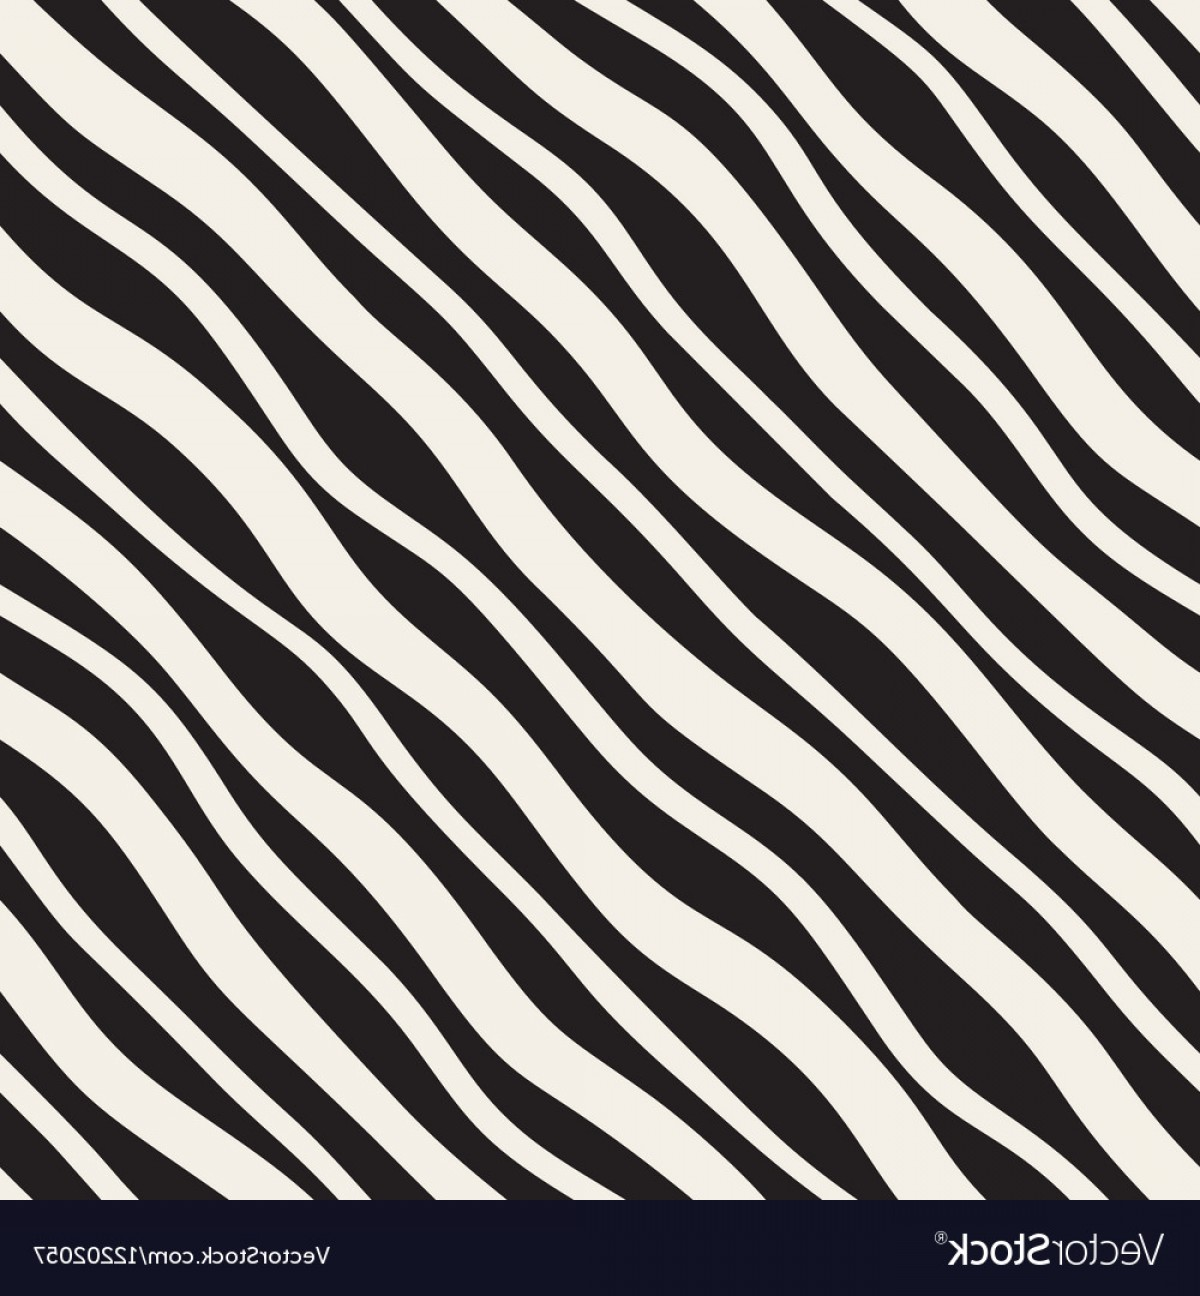 Wavy Line Illustrator Vector: Seamless Diagonal Wavy Lines Pattern Vector